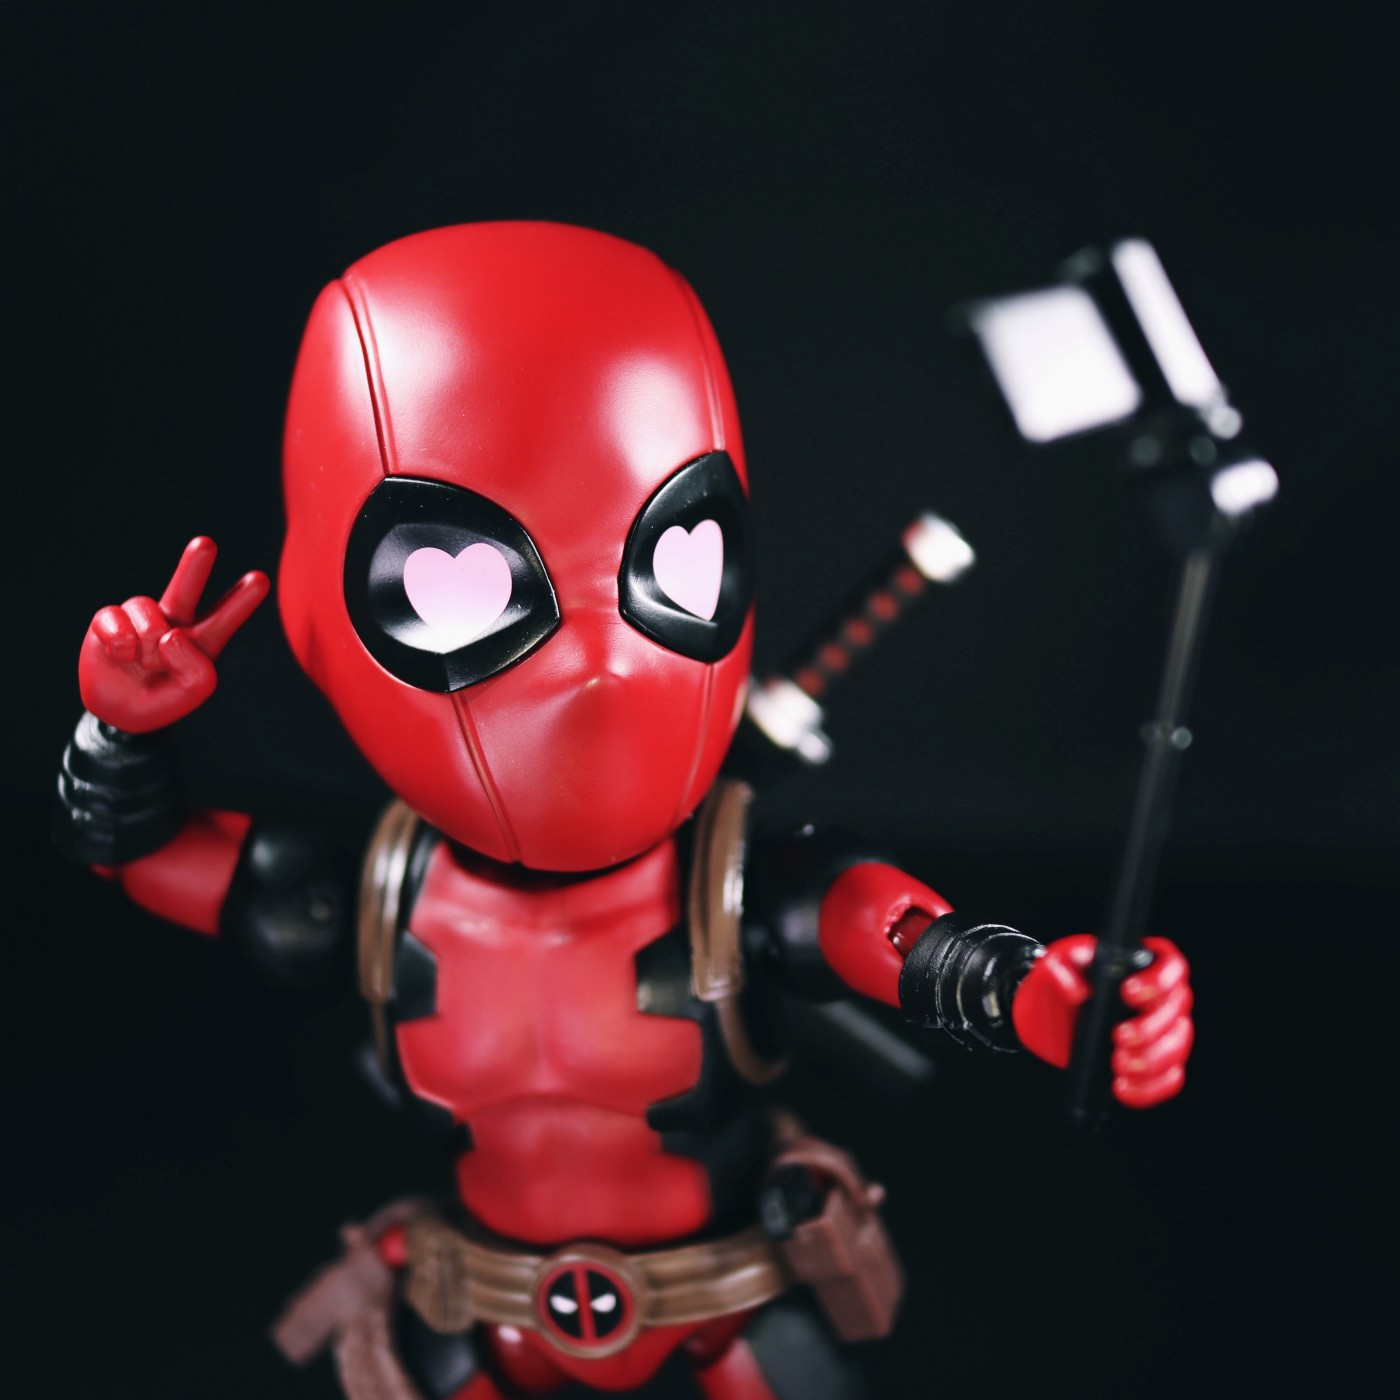 A photo of a toy doll of the superhero Dead Pool posing before his own smart phone on a selfie stick, throwing a peace sign with his free hand.